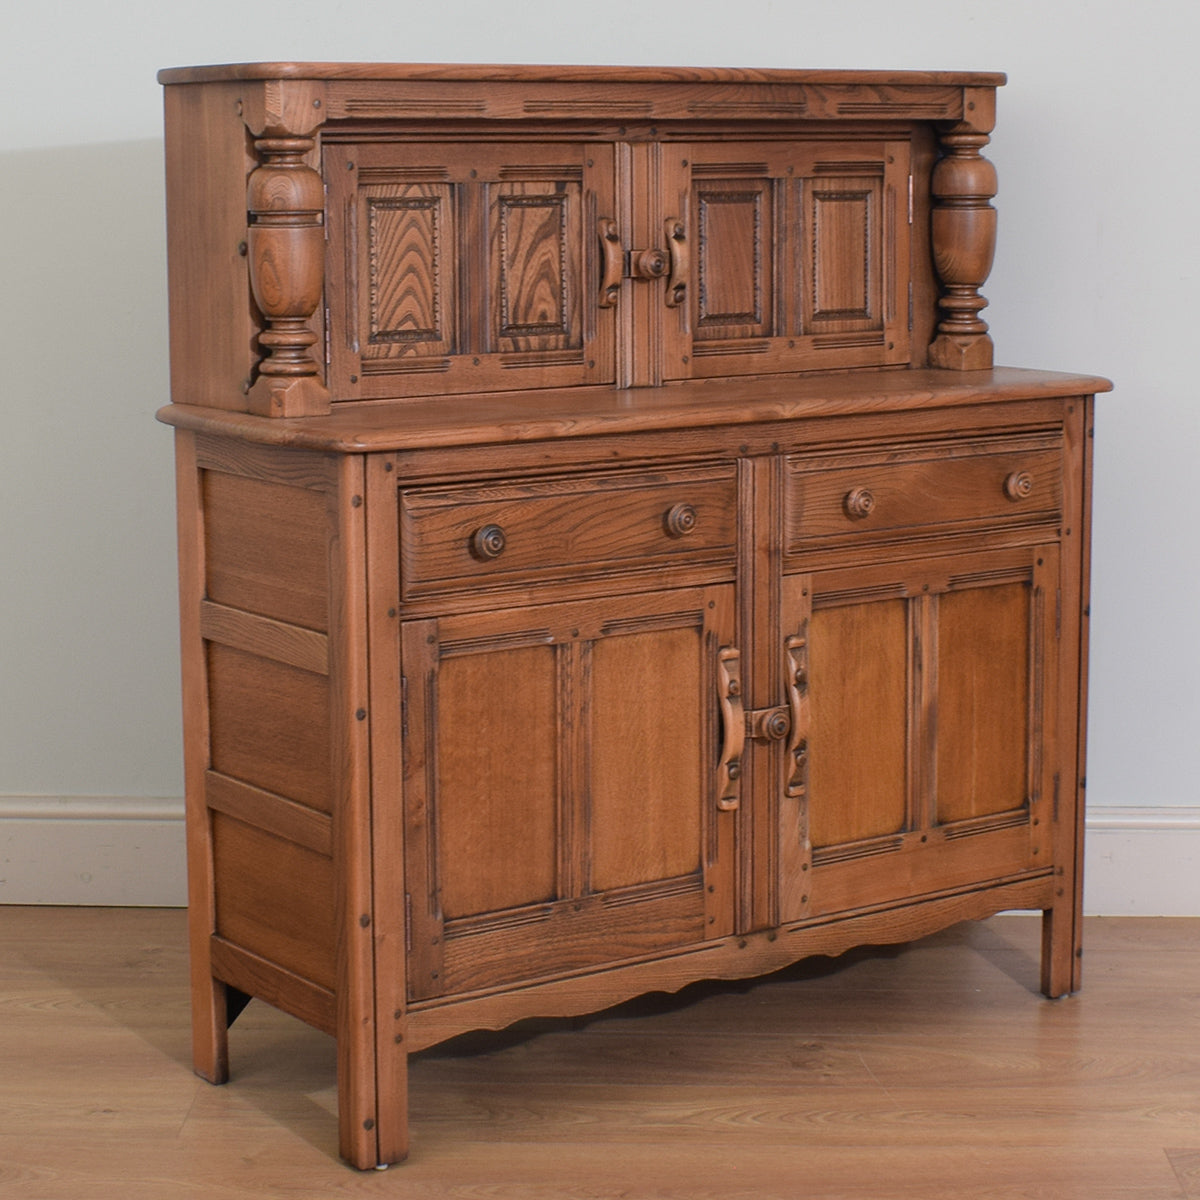 Ercol Elm Wood Court Cabinet